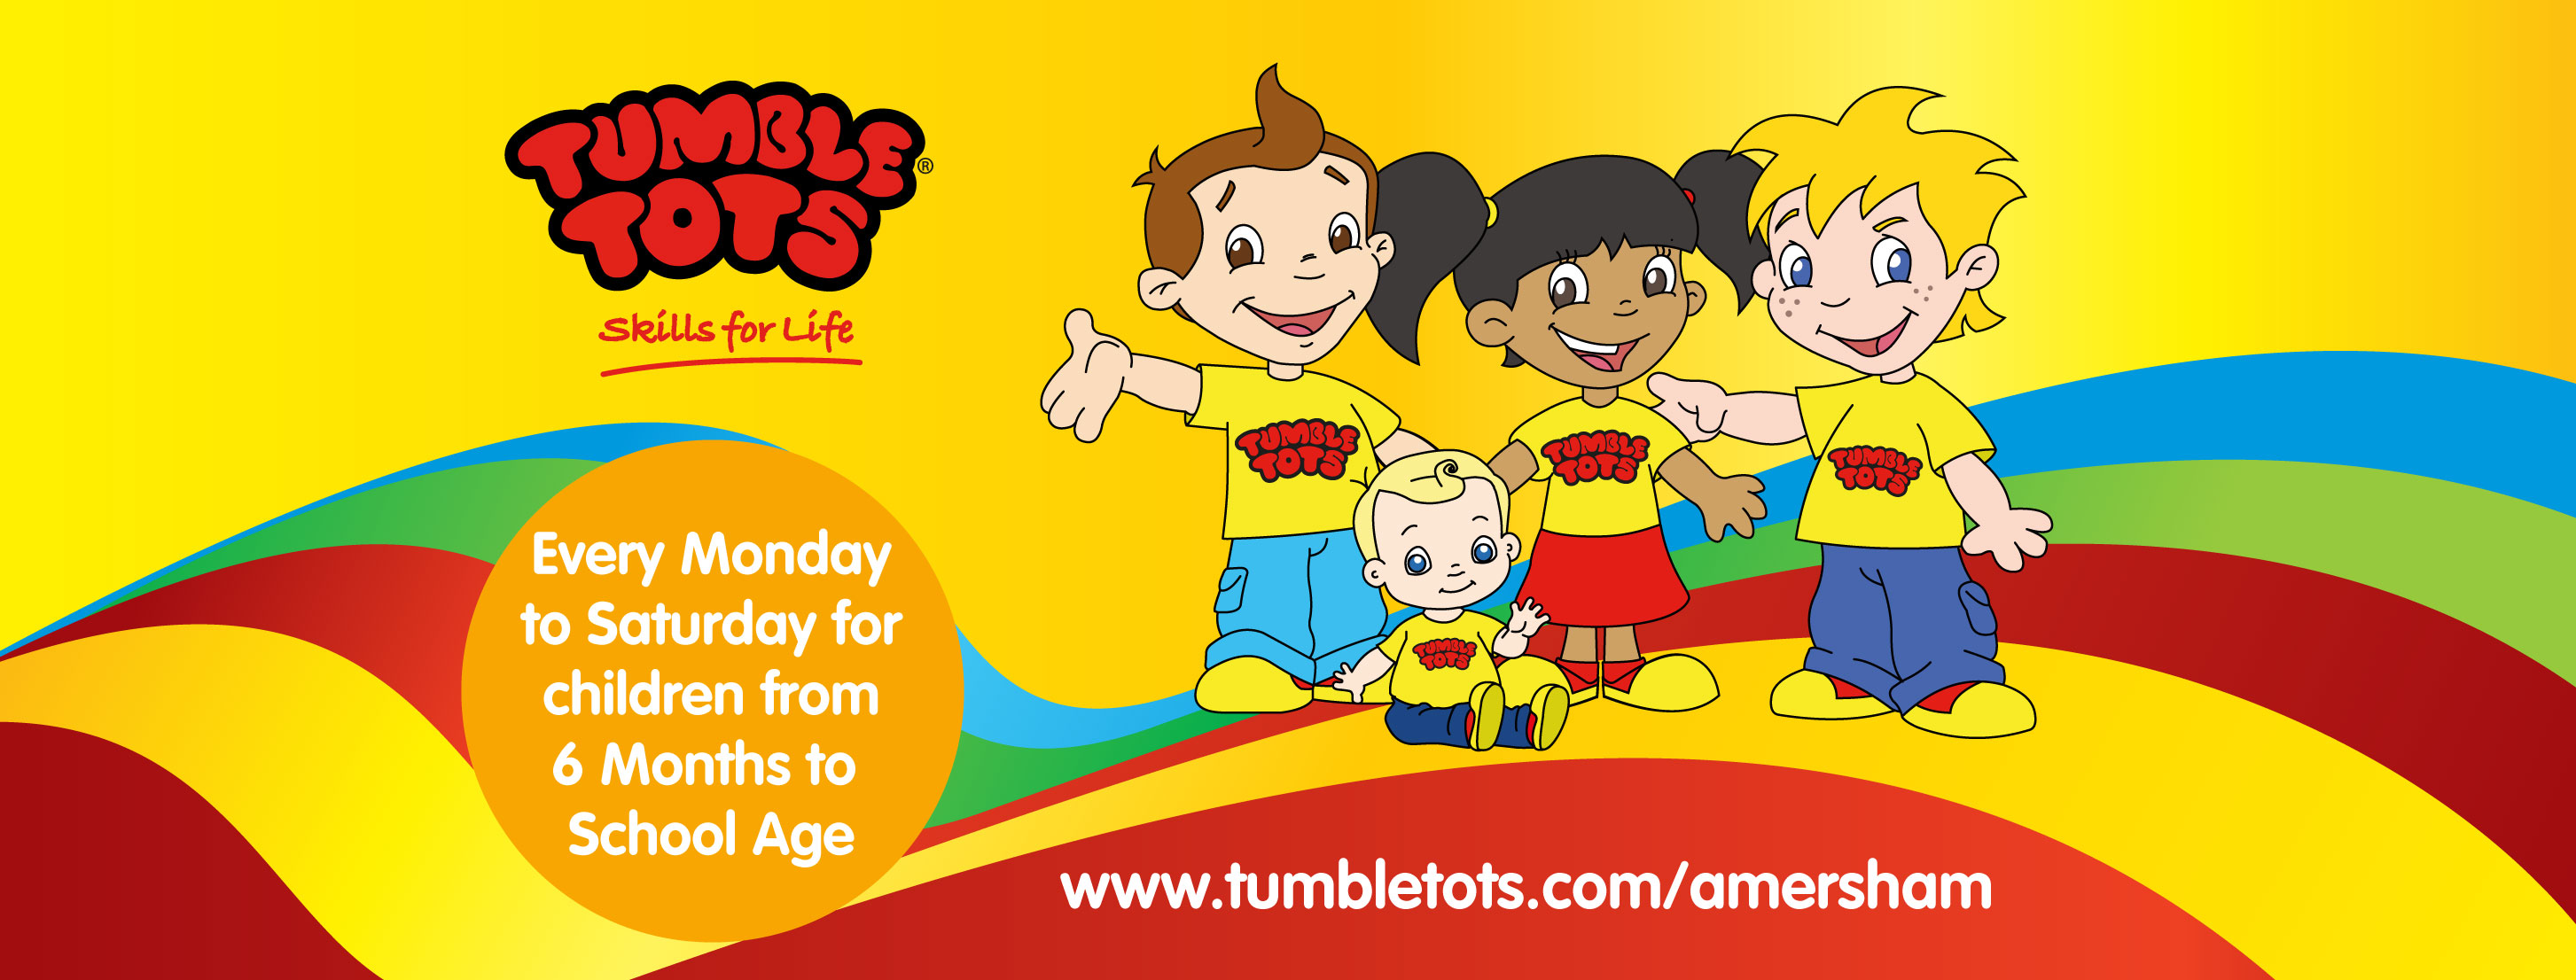 Tumble Tots Amersham Region's main image